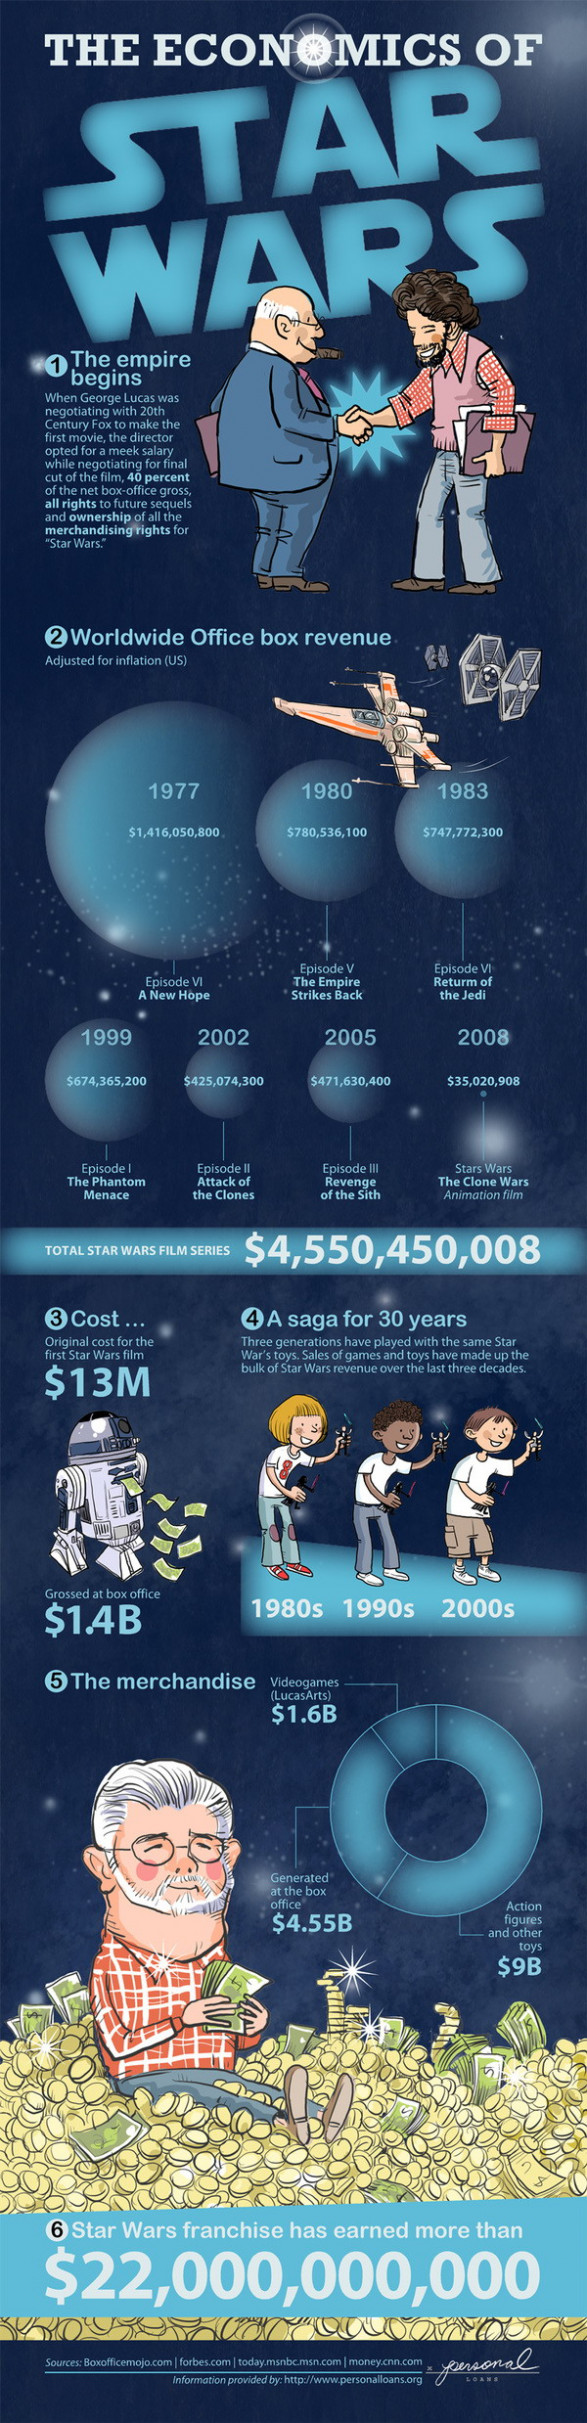 The Economics of Star Wars